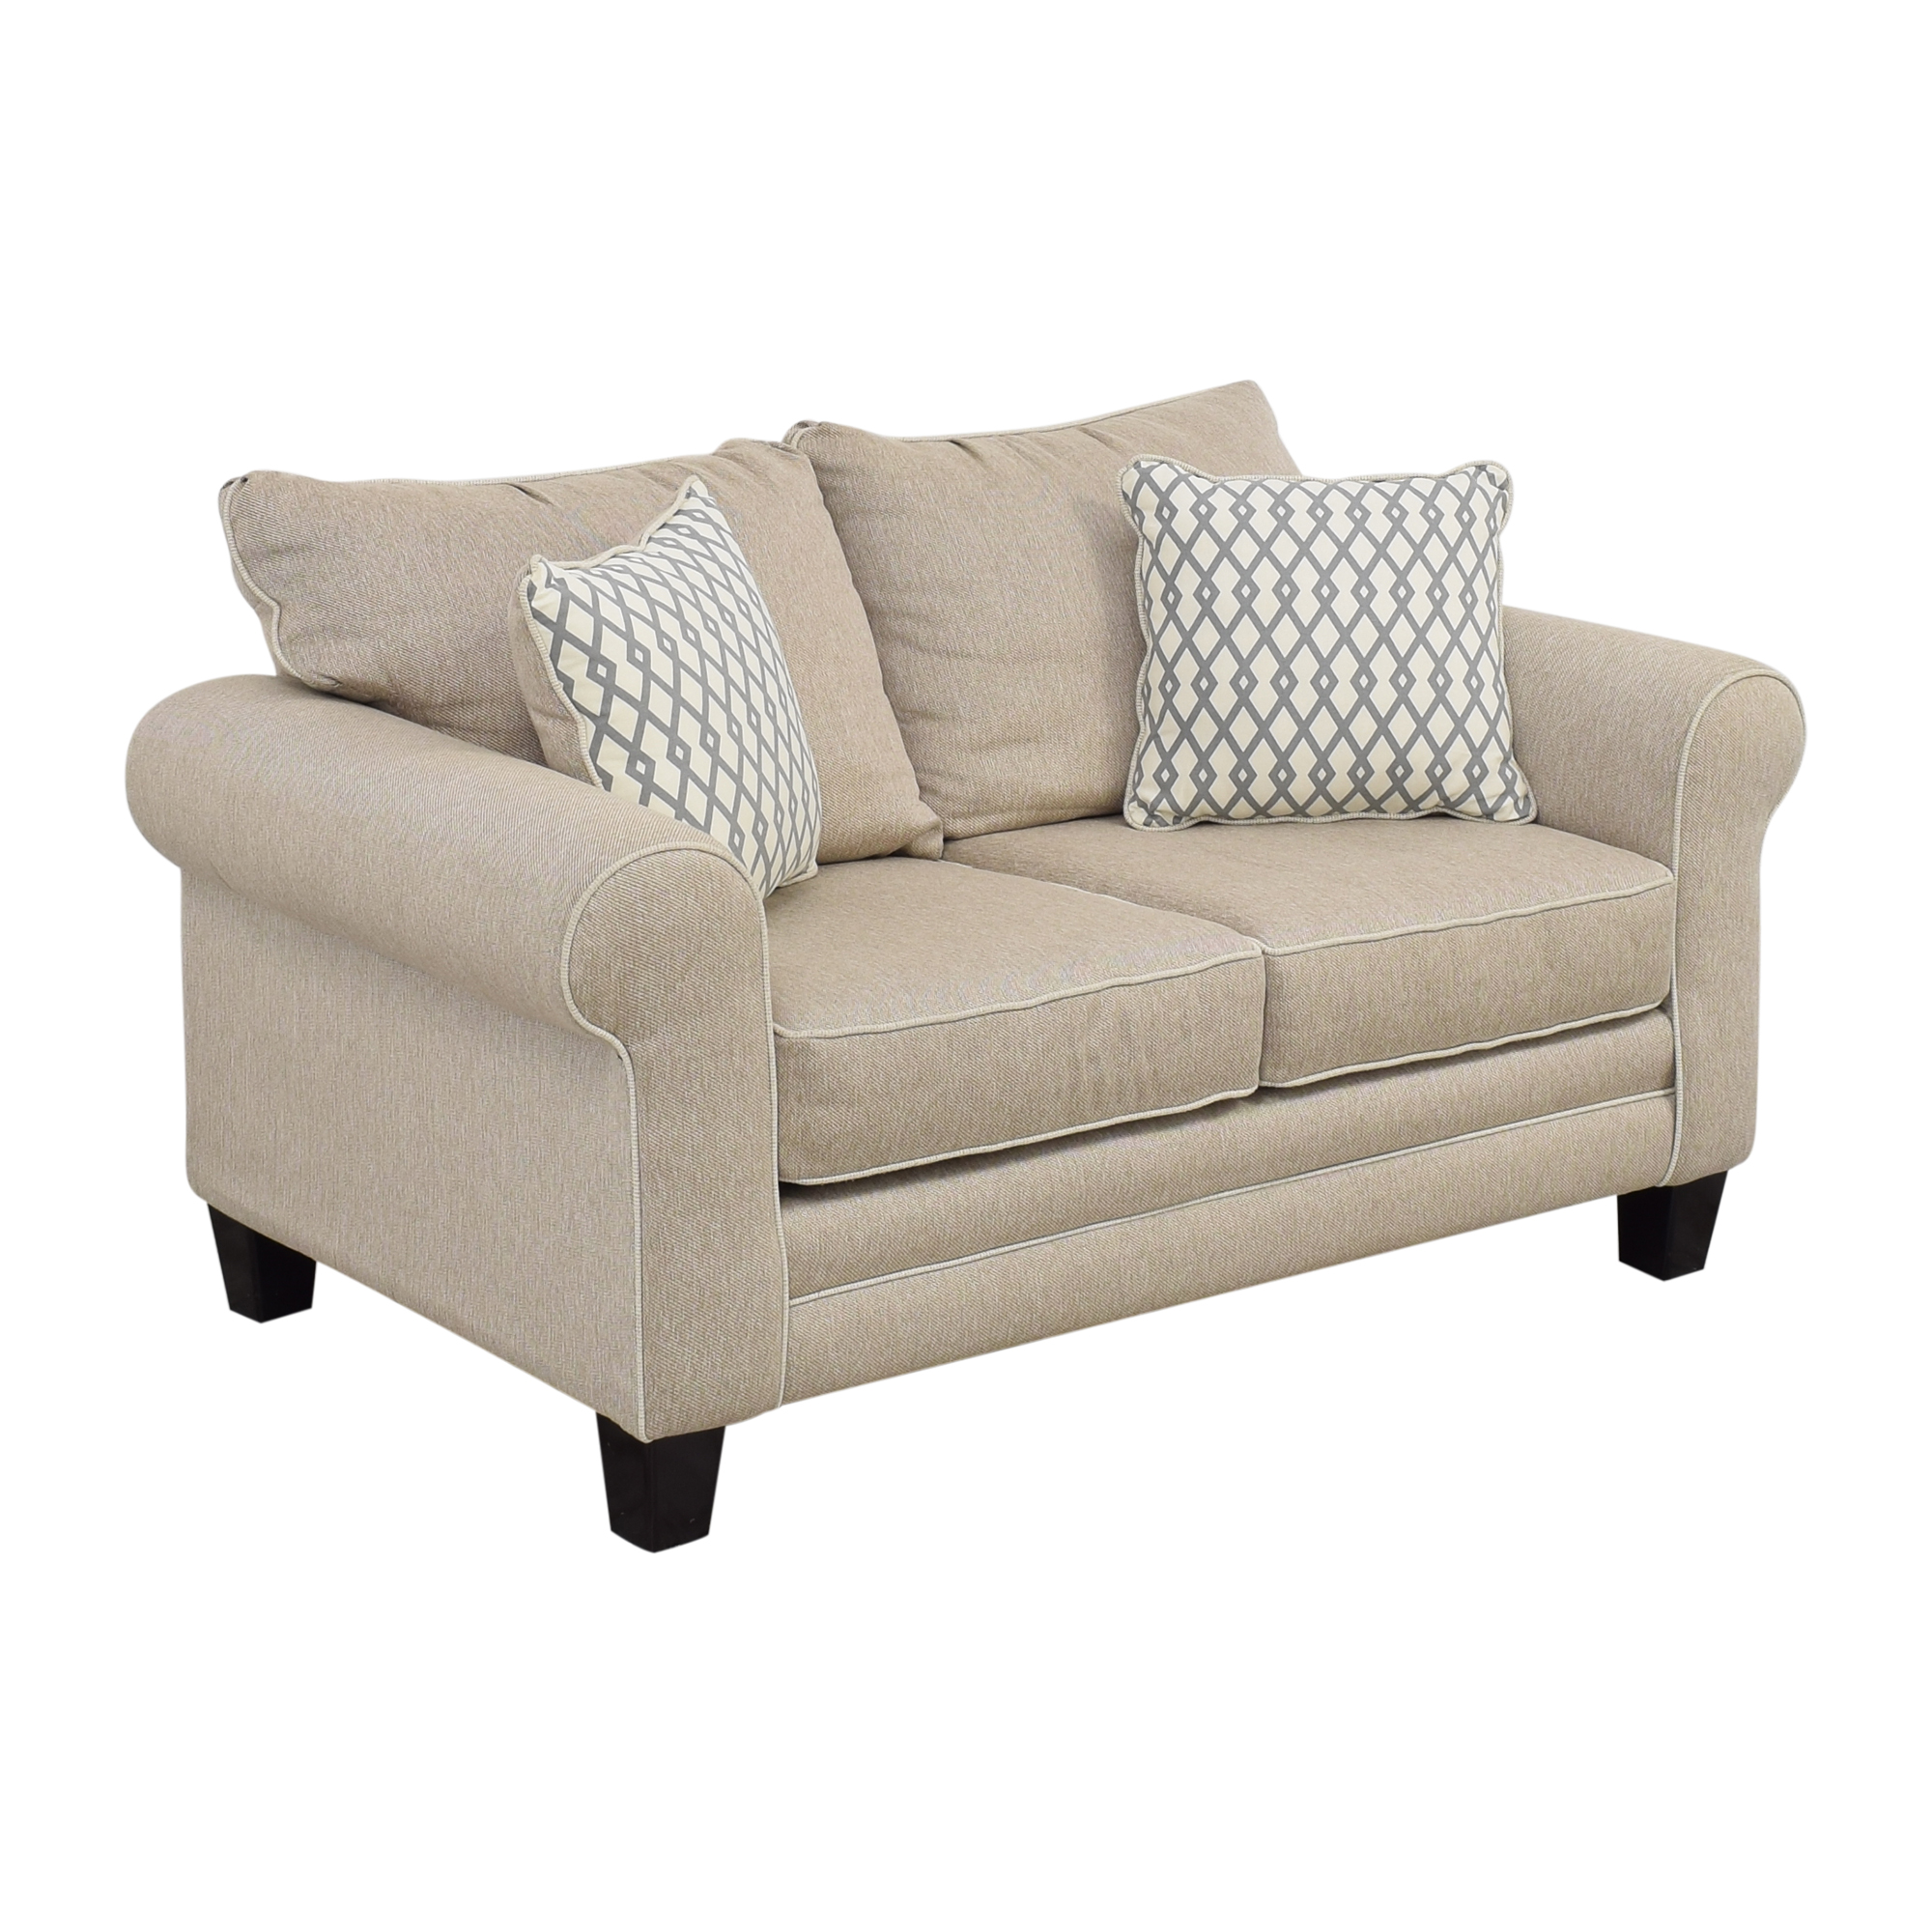 Raymour & Flanigan Raymour & Flanigan Beige Loveseat used